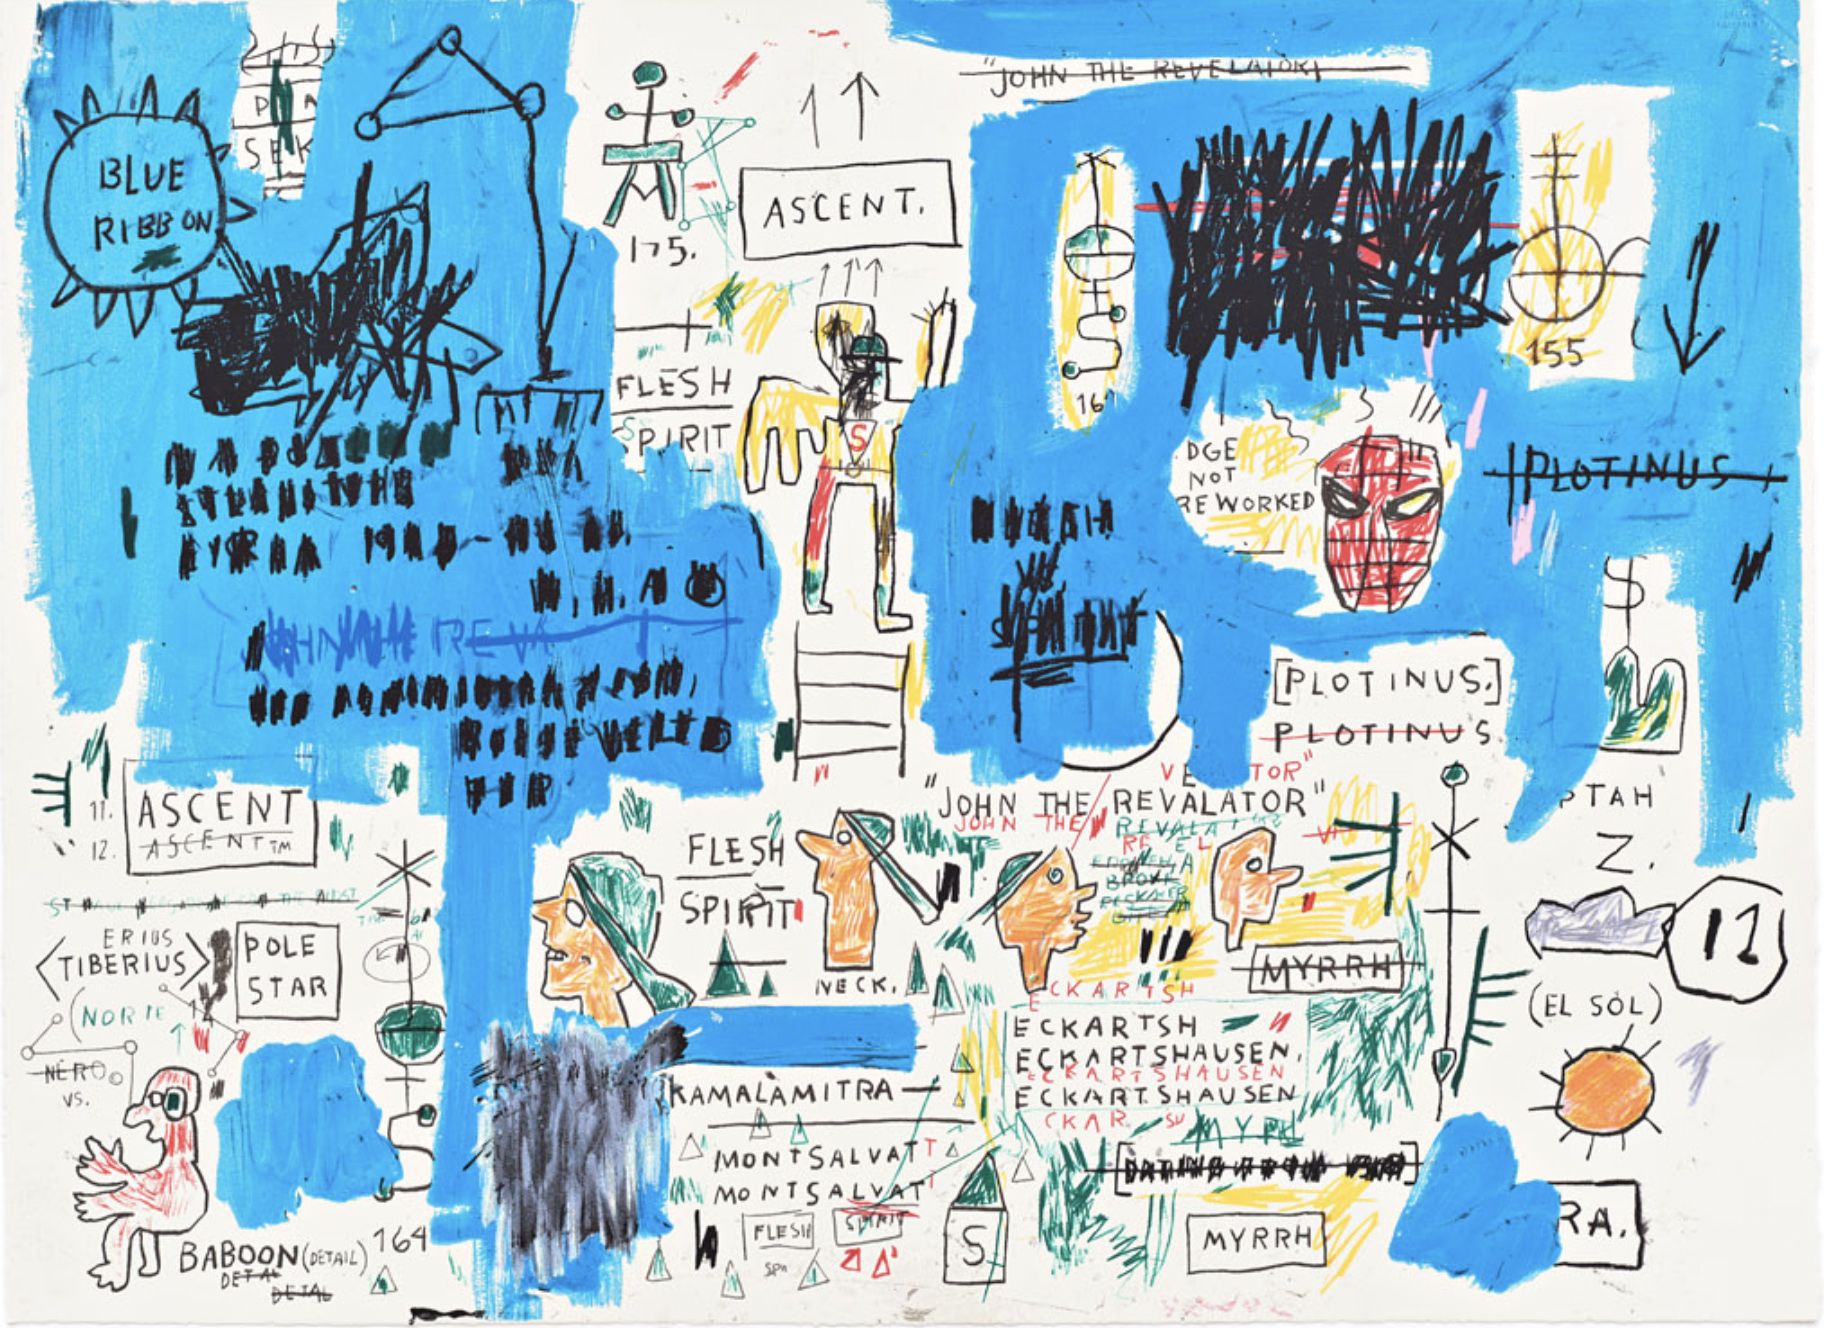 Ascent by Basquiat